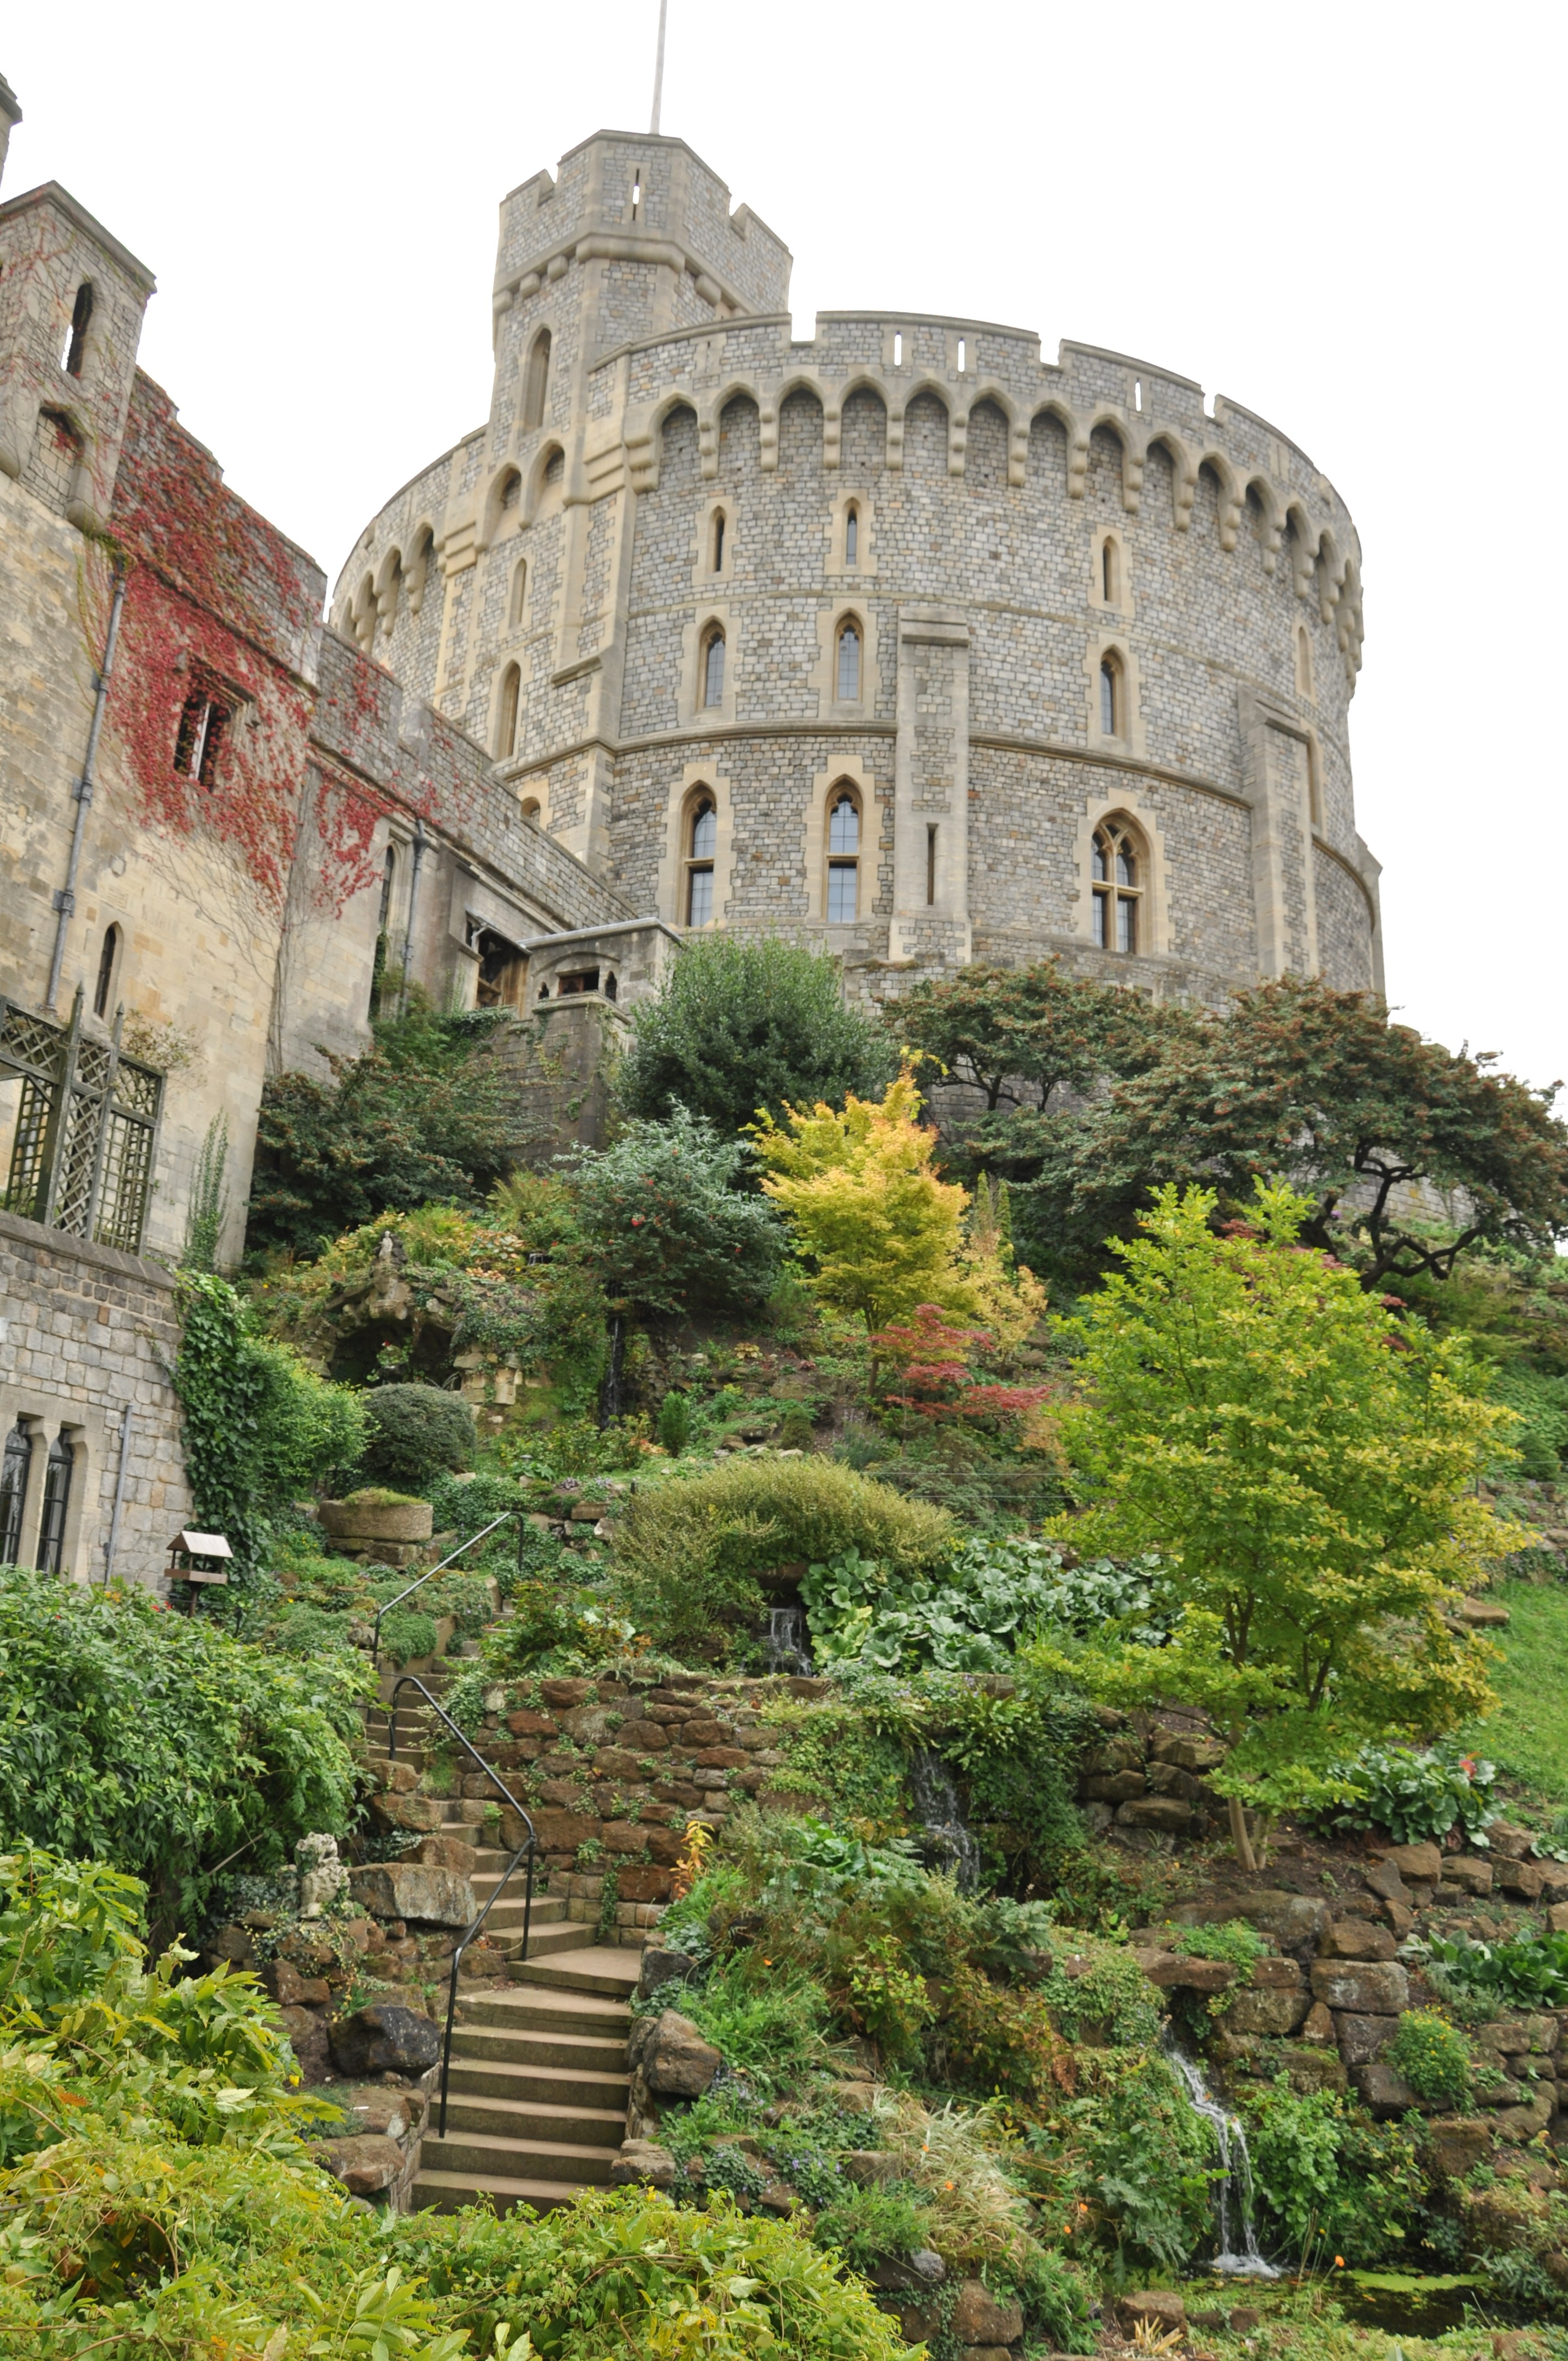 grade school essay on windsor castle Castle homework help castle homework help a castles is a large strong building, built in the past by a ruler or important person to protect the people inside from attack.